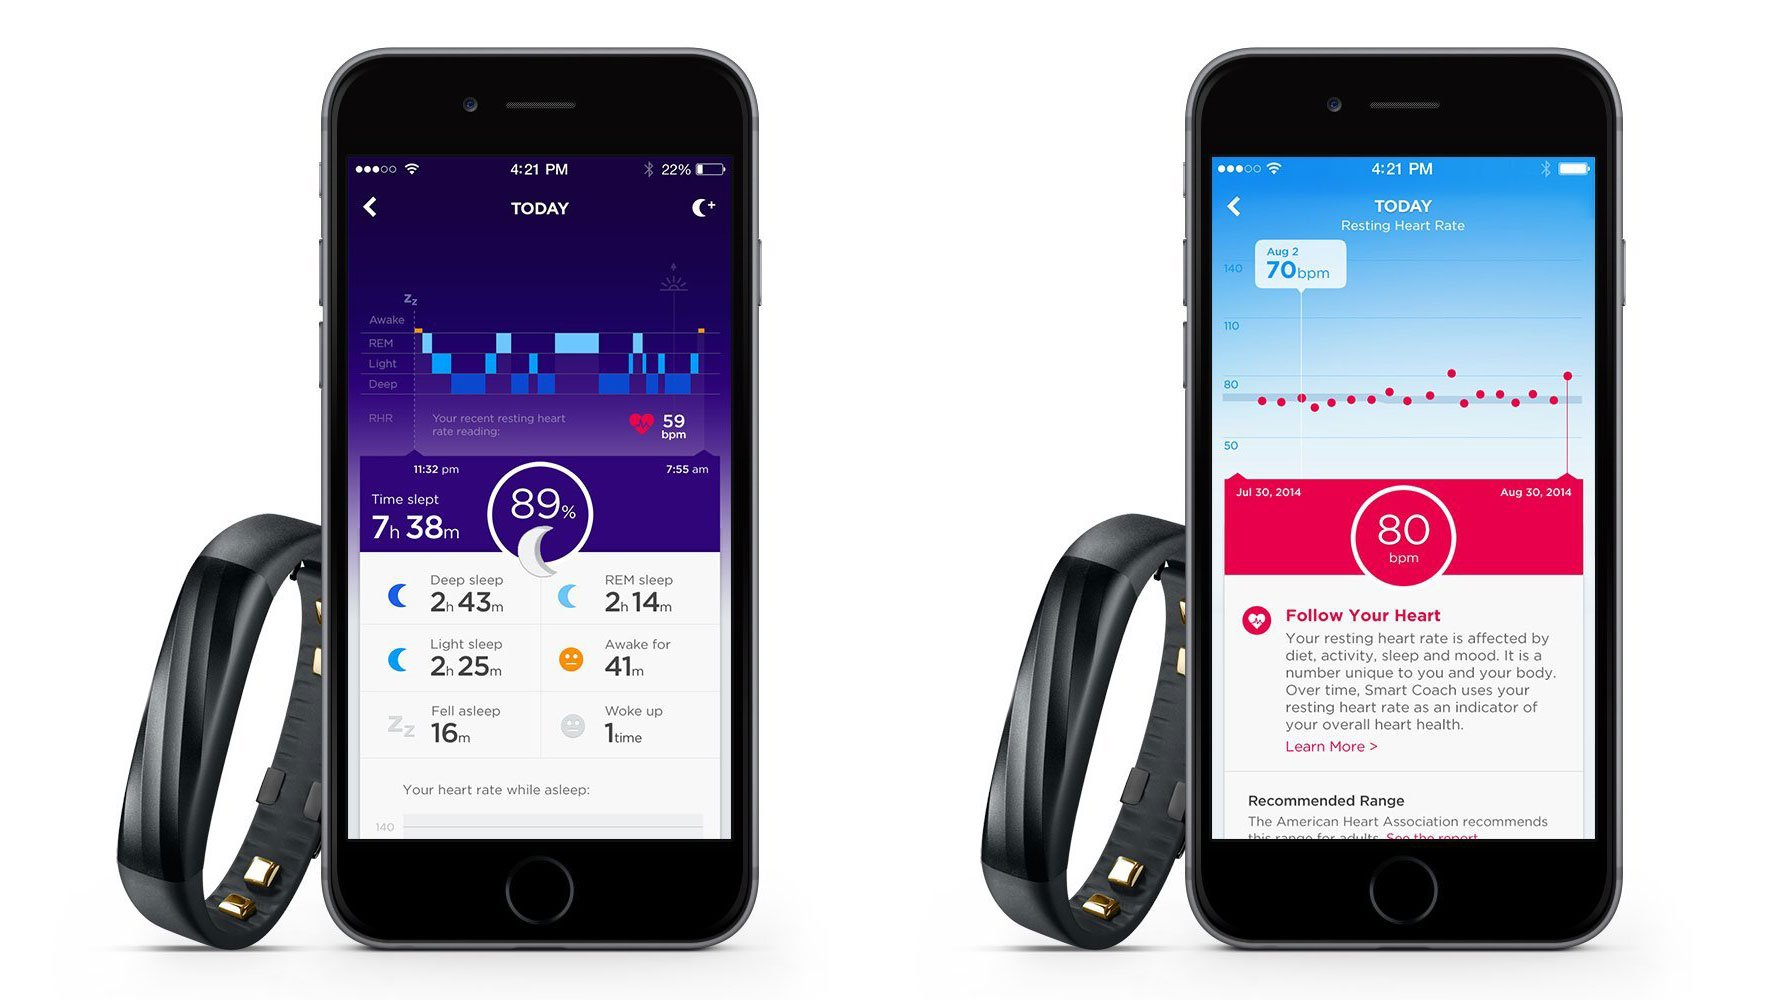 Jawbone UP heart rate